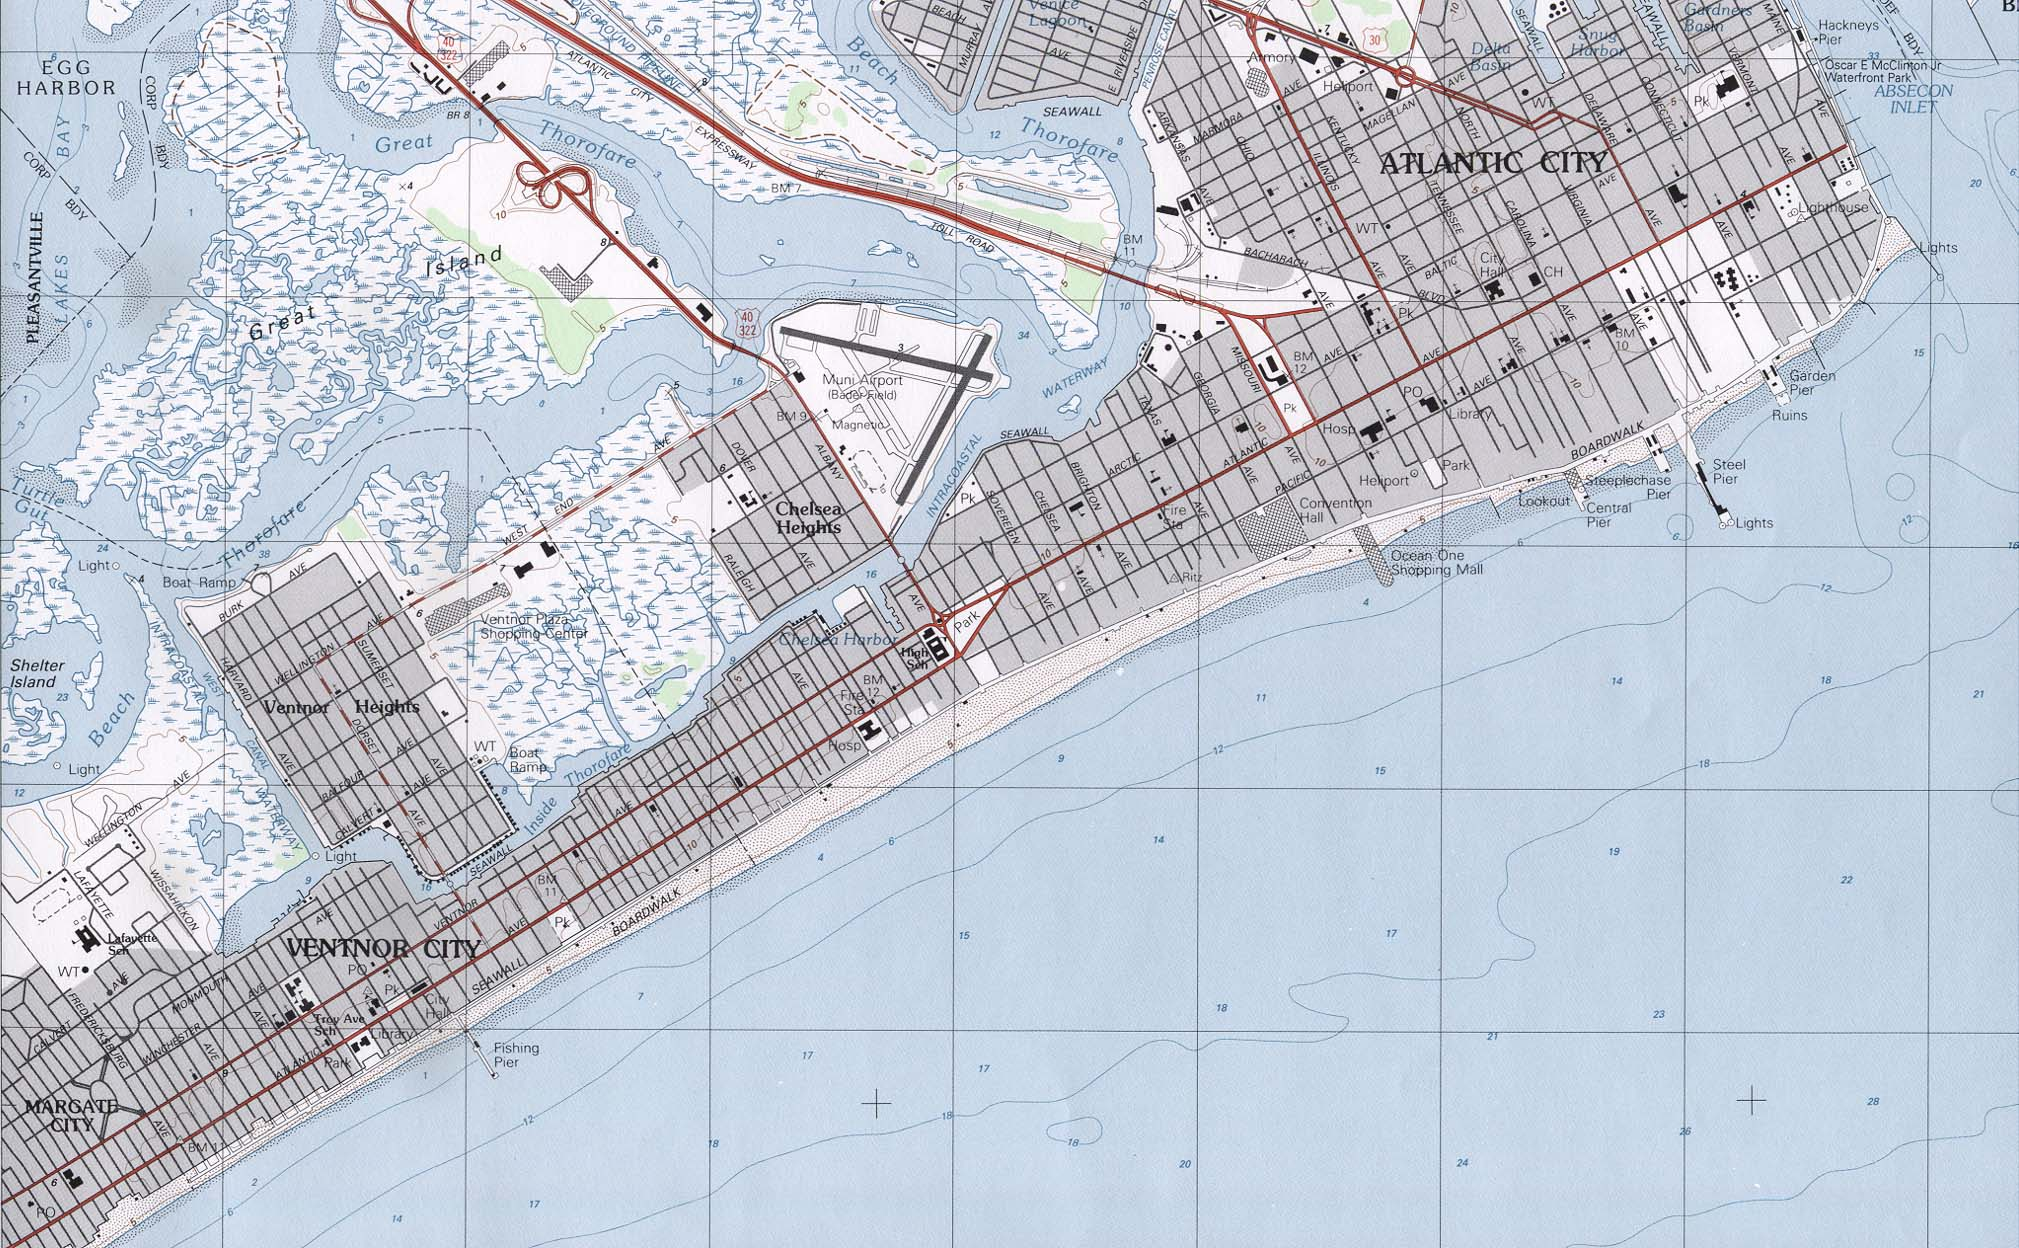 Map Of New Jersey A Source For All Kinds Of Maps Of New Jersey - Nj road map